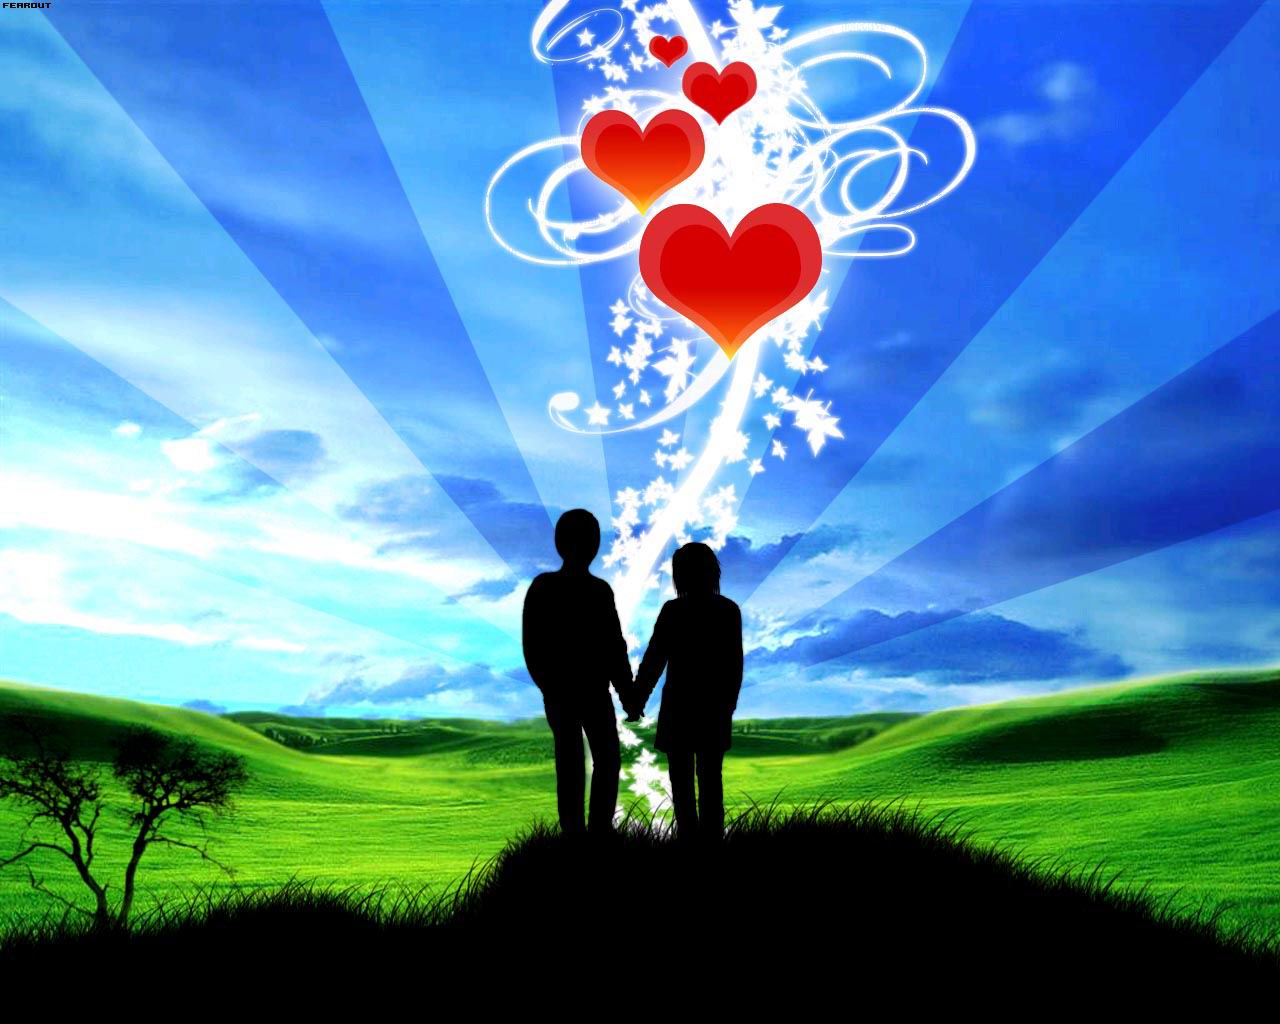 Love Wallpaper For Background : Love Wallpapers HD Nice Wallpapers